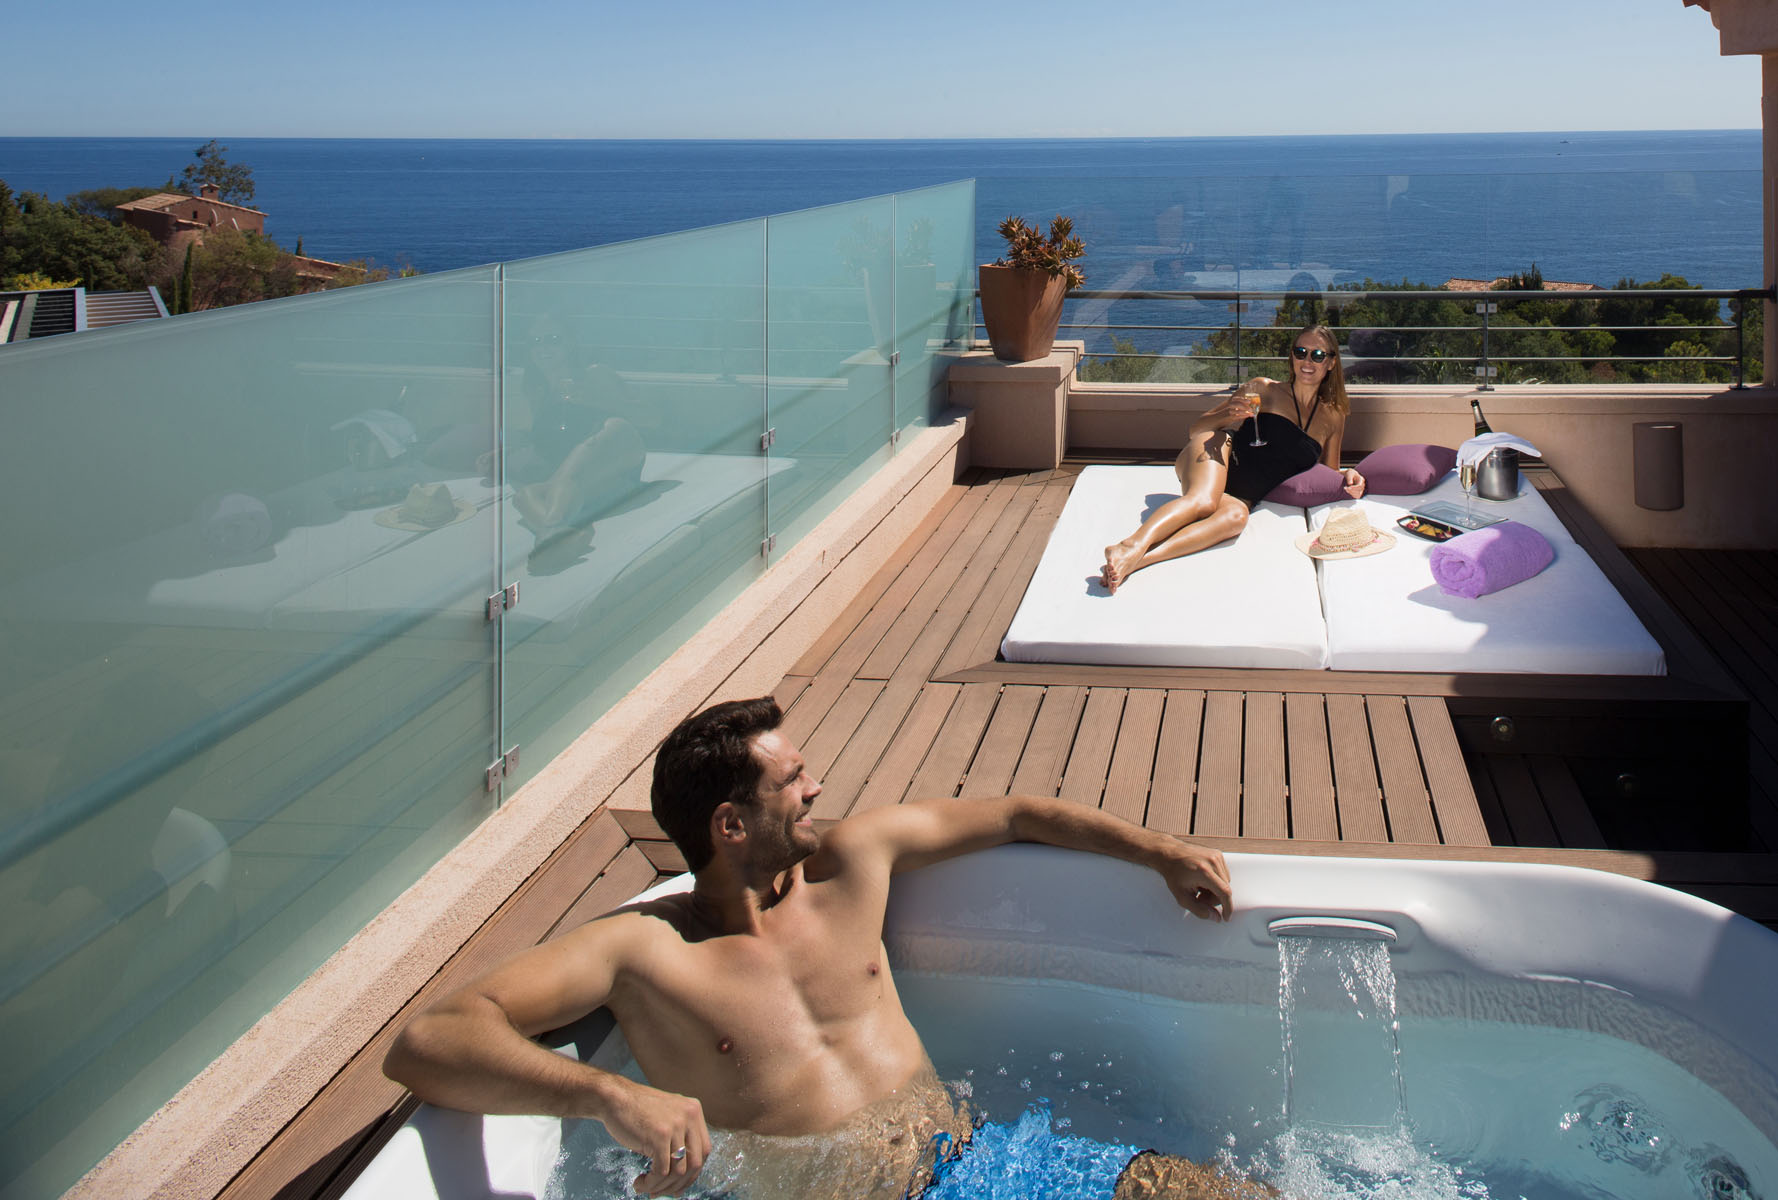 512/import-from-v1/images/chambres/penthouse/Y-exterieurs_et_piscine__134.jpg